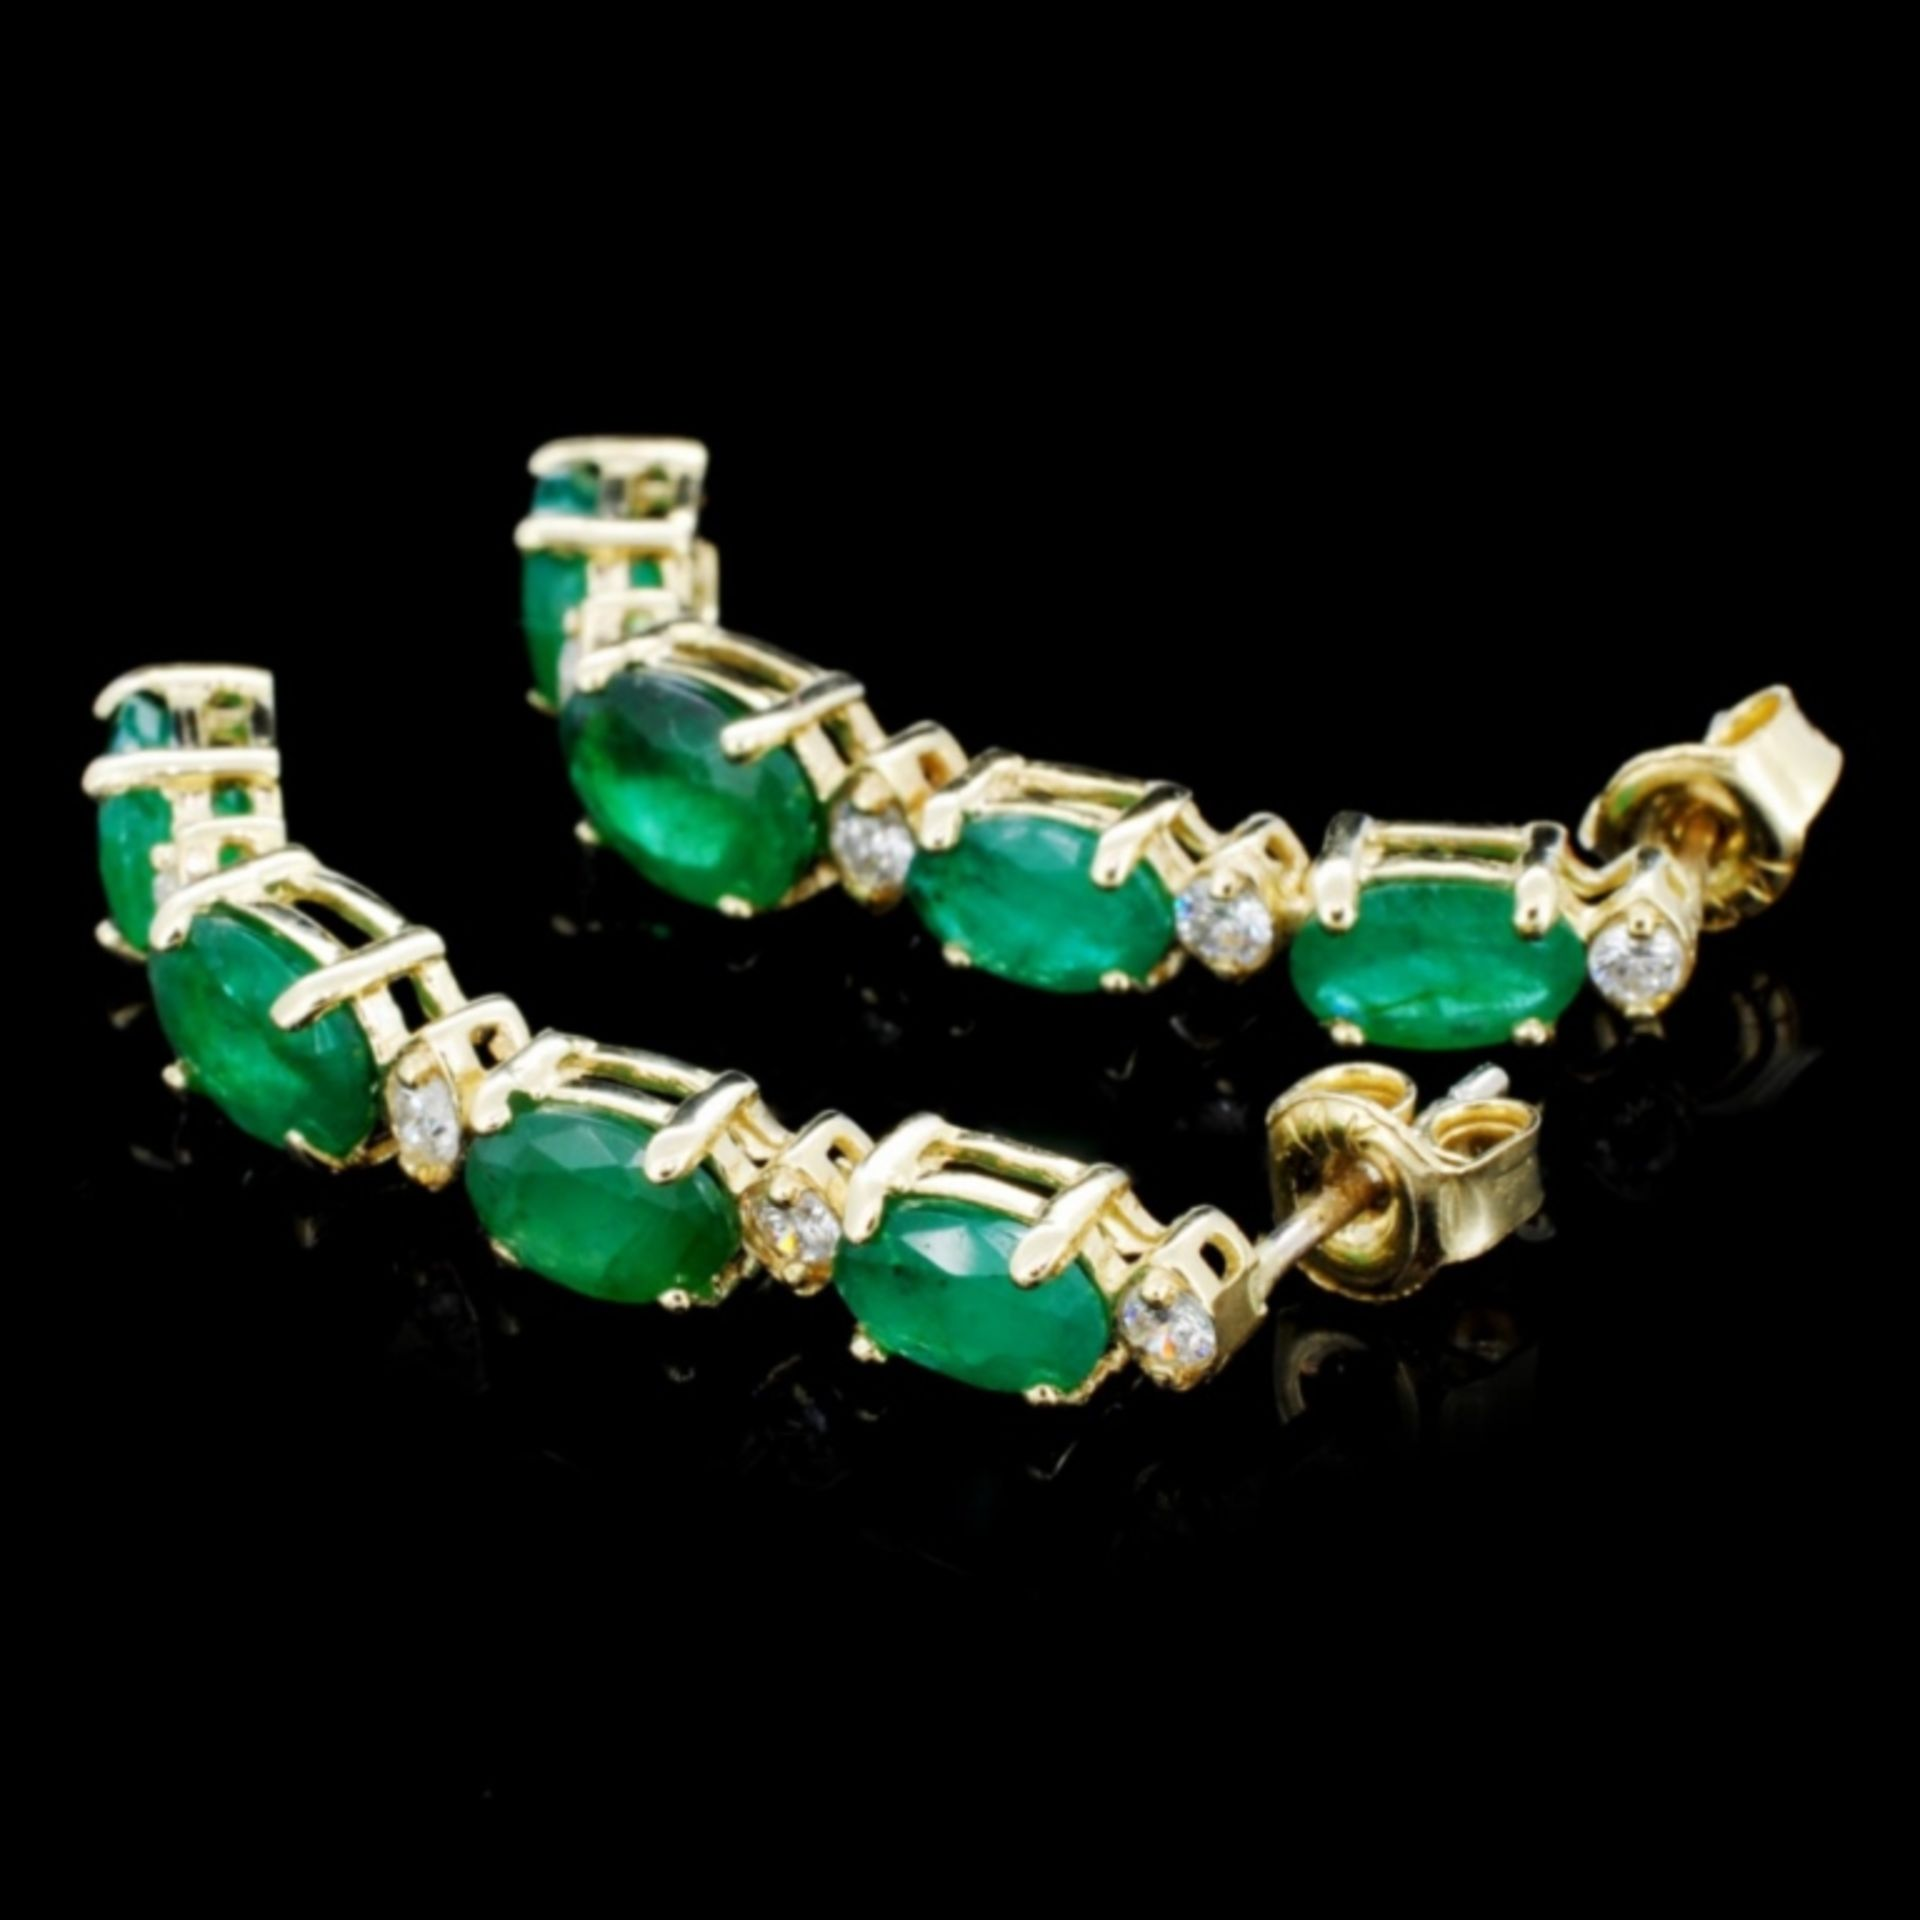 14K Gold 5.00ct Emerald & 0.35ctw Diamond Earrings - Image 2 of 3